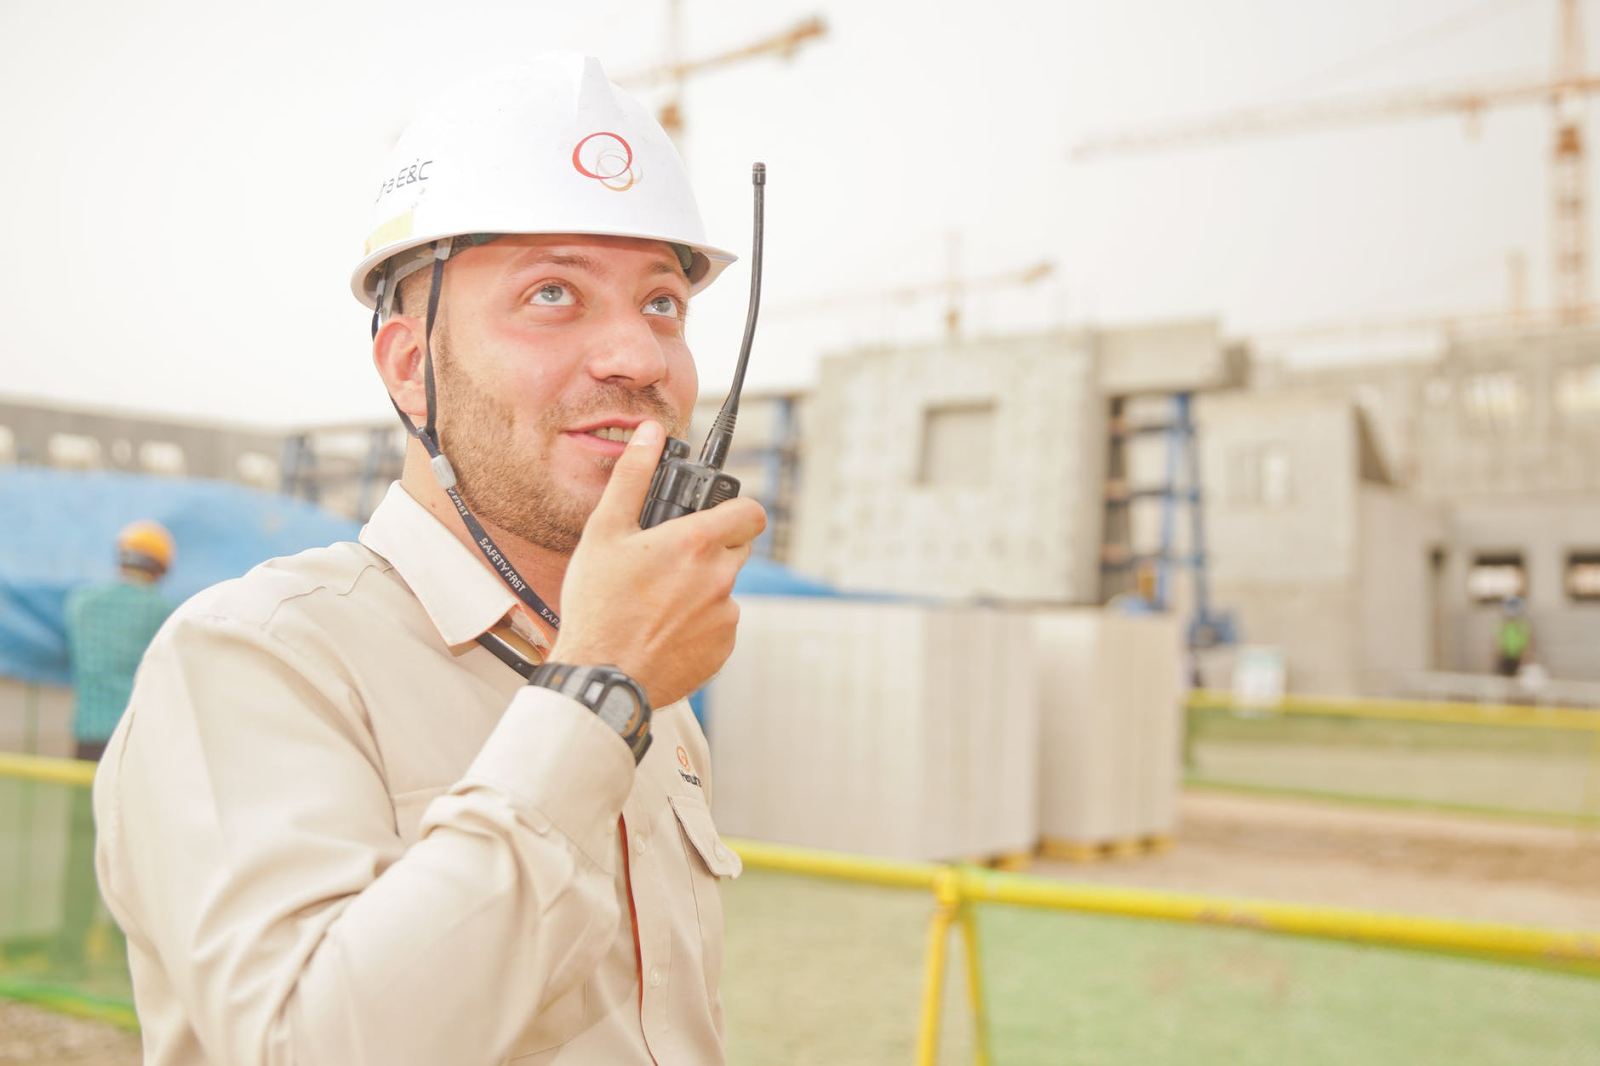 man in a white hard hat on a mobile device example of recruitment experience